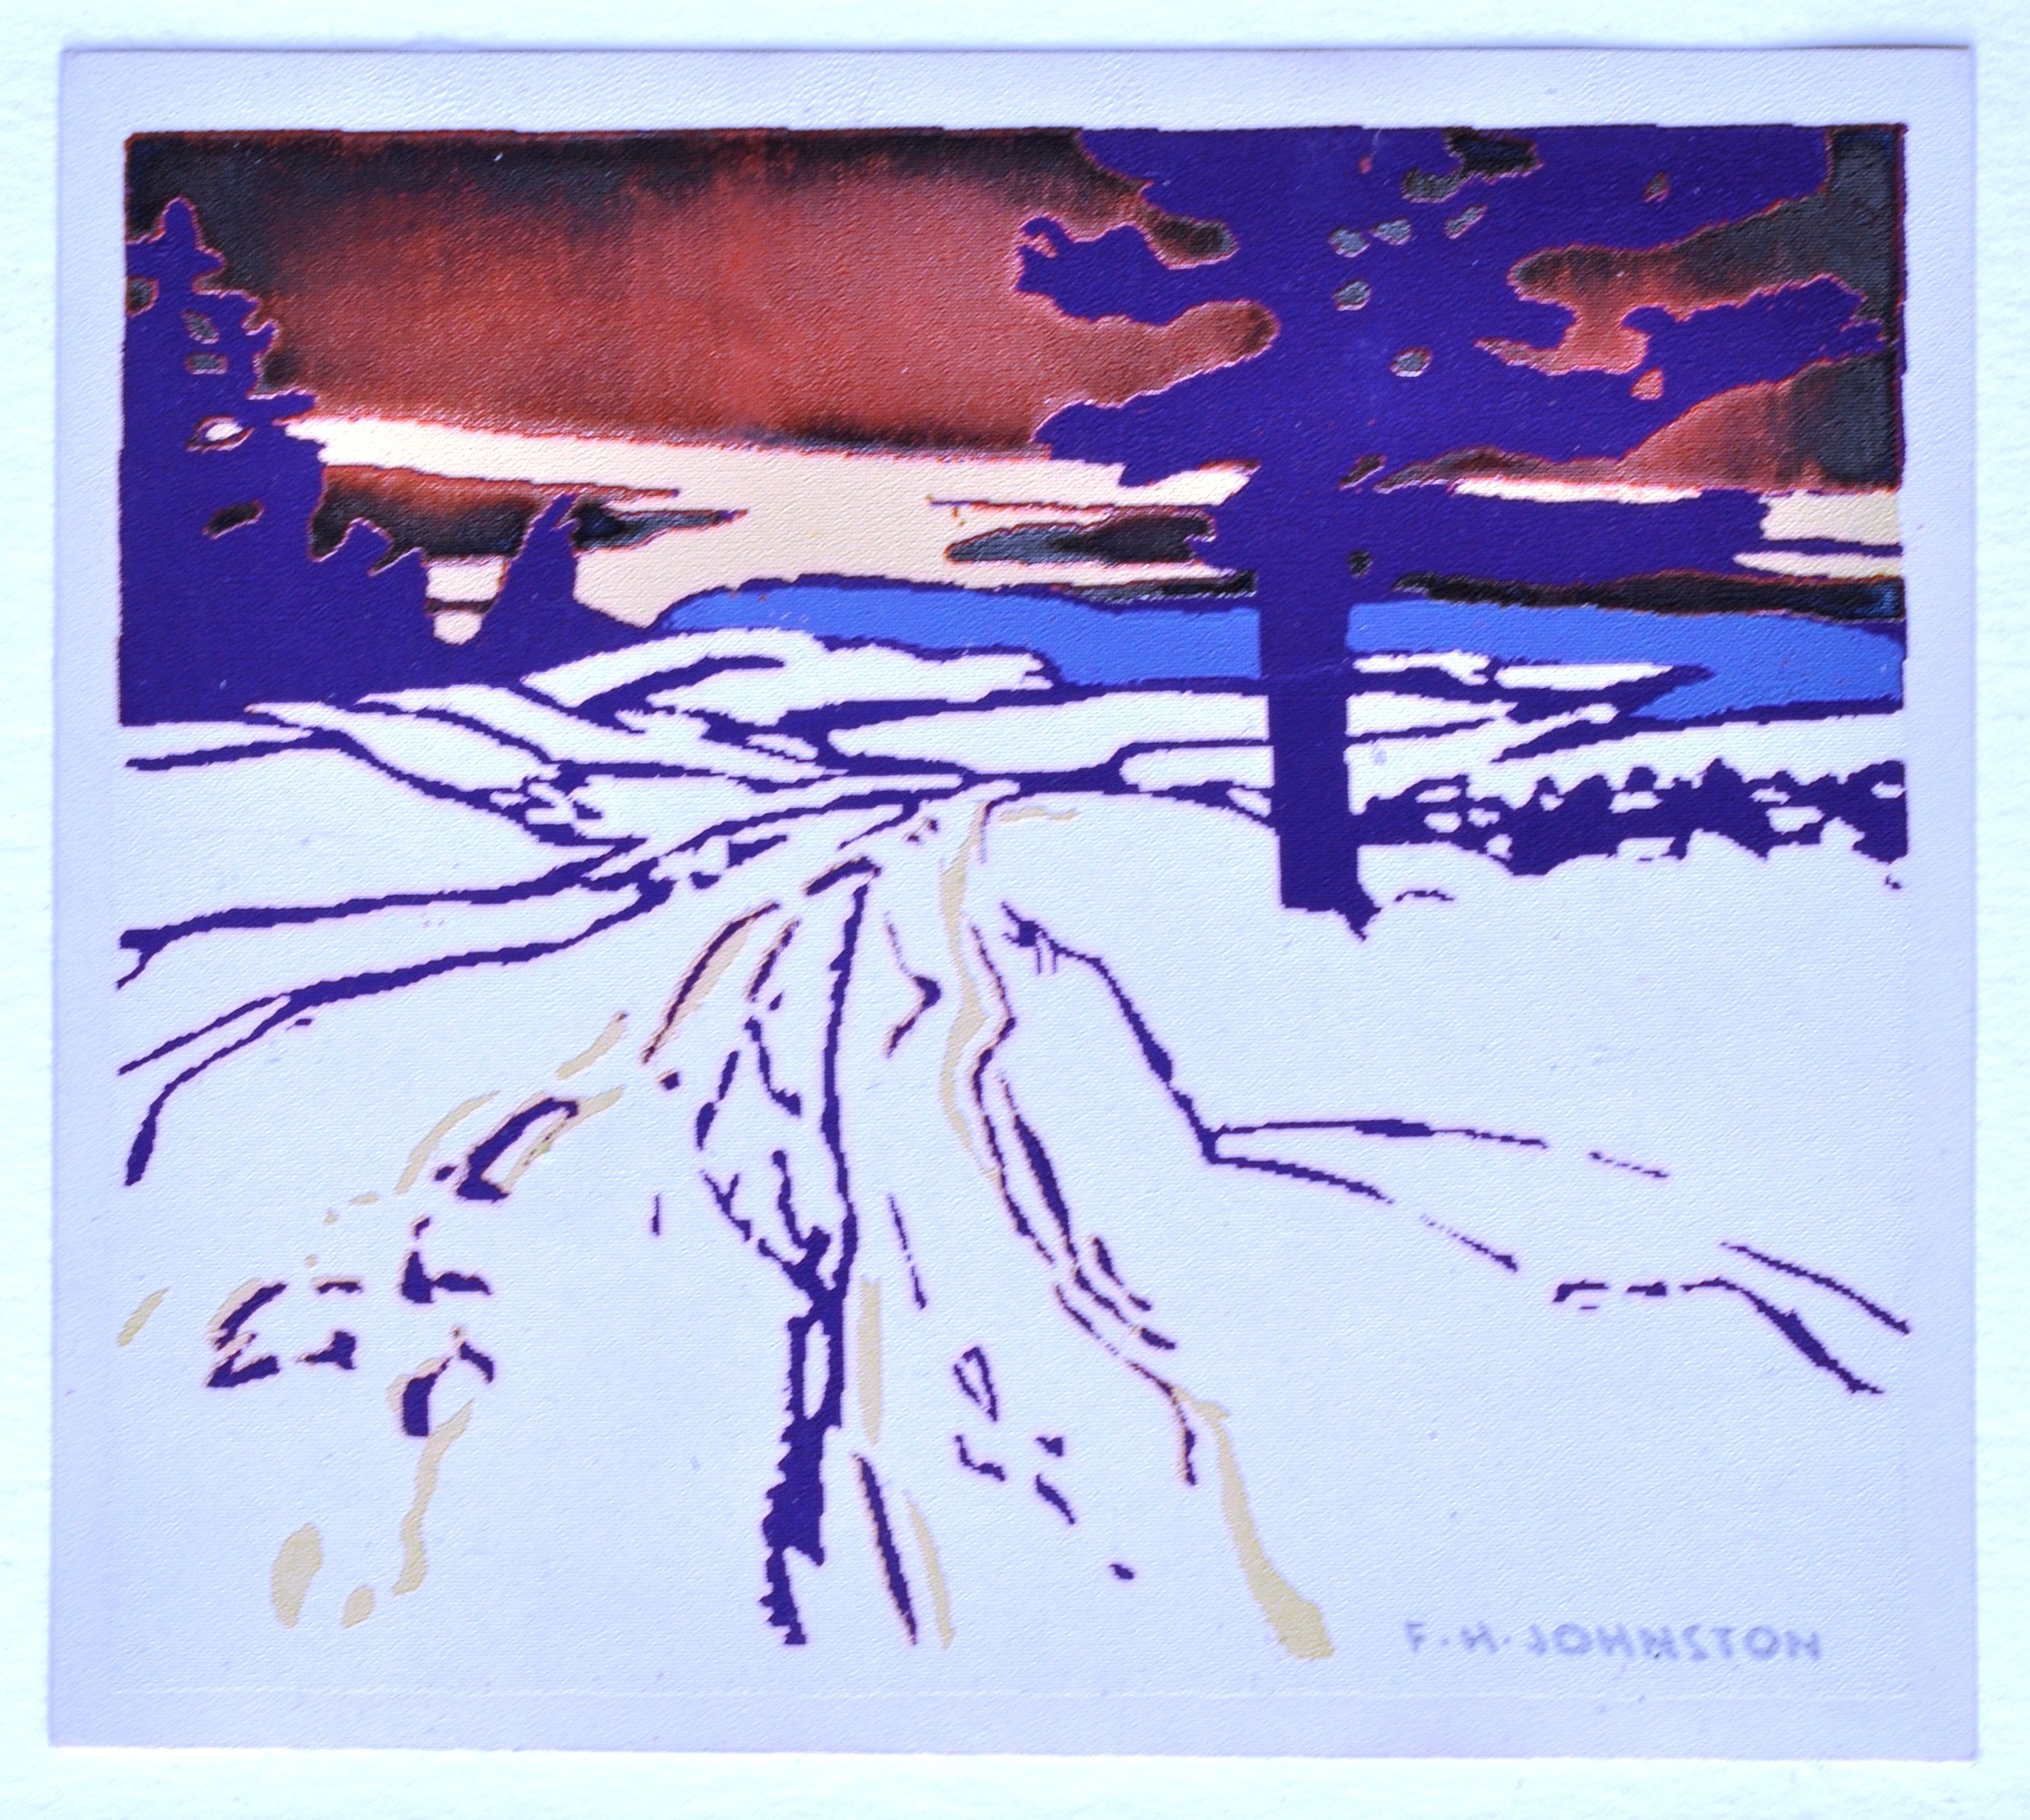 """Sunset Glory , n.d.,Franz Johnston, serigraph, 3 2/8""""x 3 3/4"""", 1984.01.02.Part of the Sampson-Matthews Serigraph Miniatures Collection."""